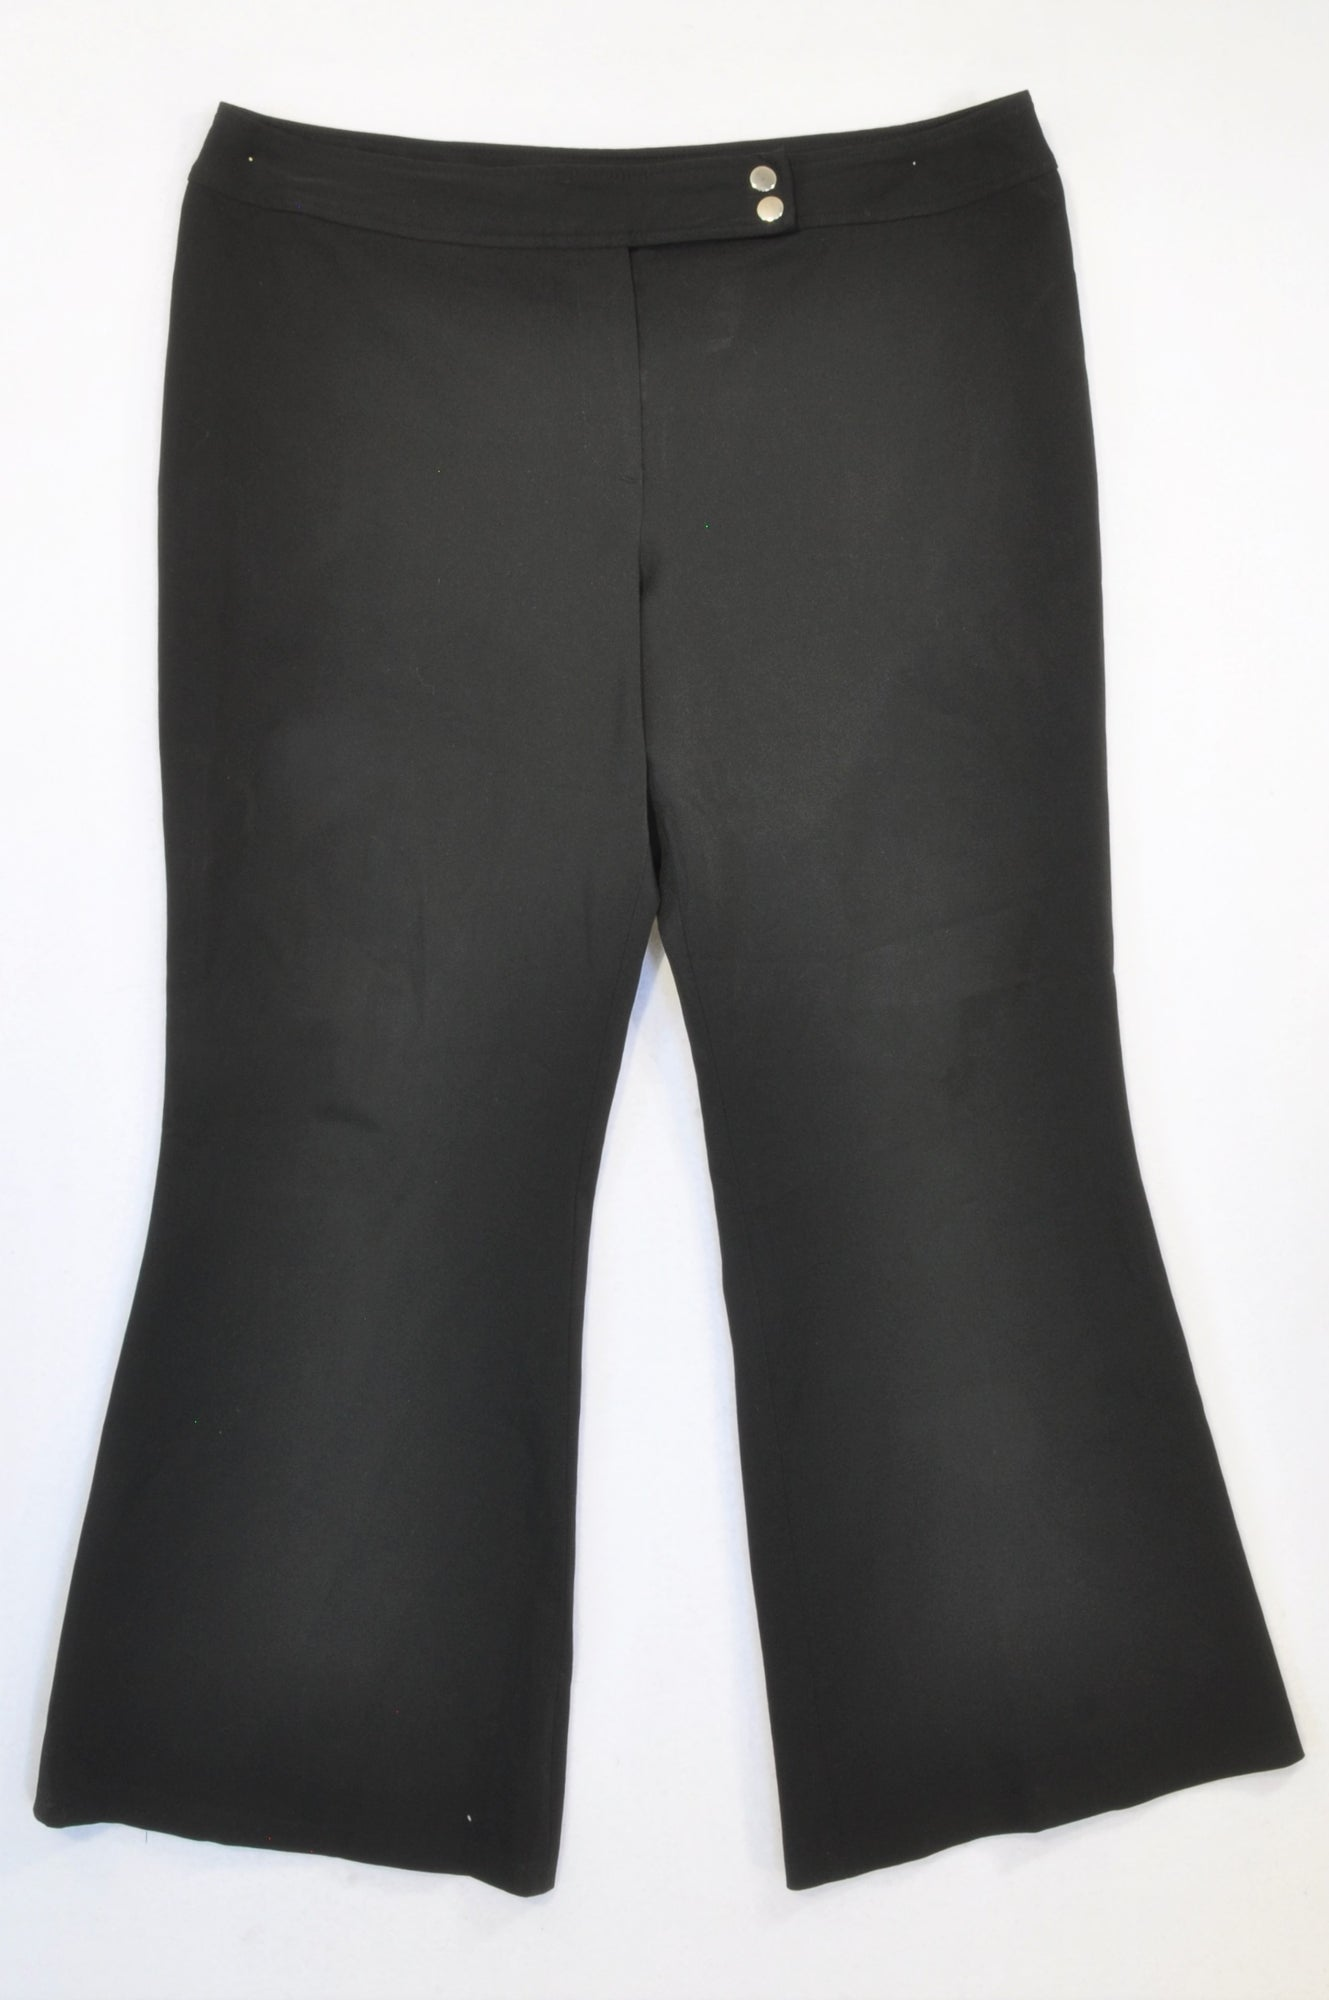 Essence Black Stretch Formal Pants Women Size 14